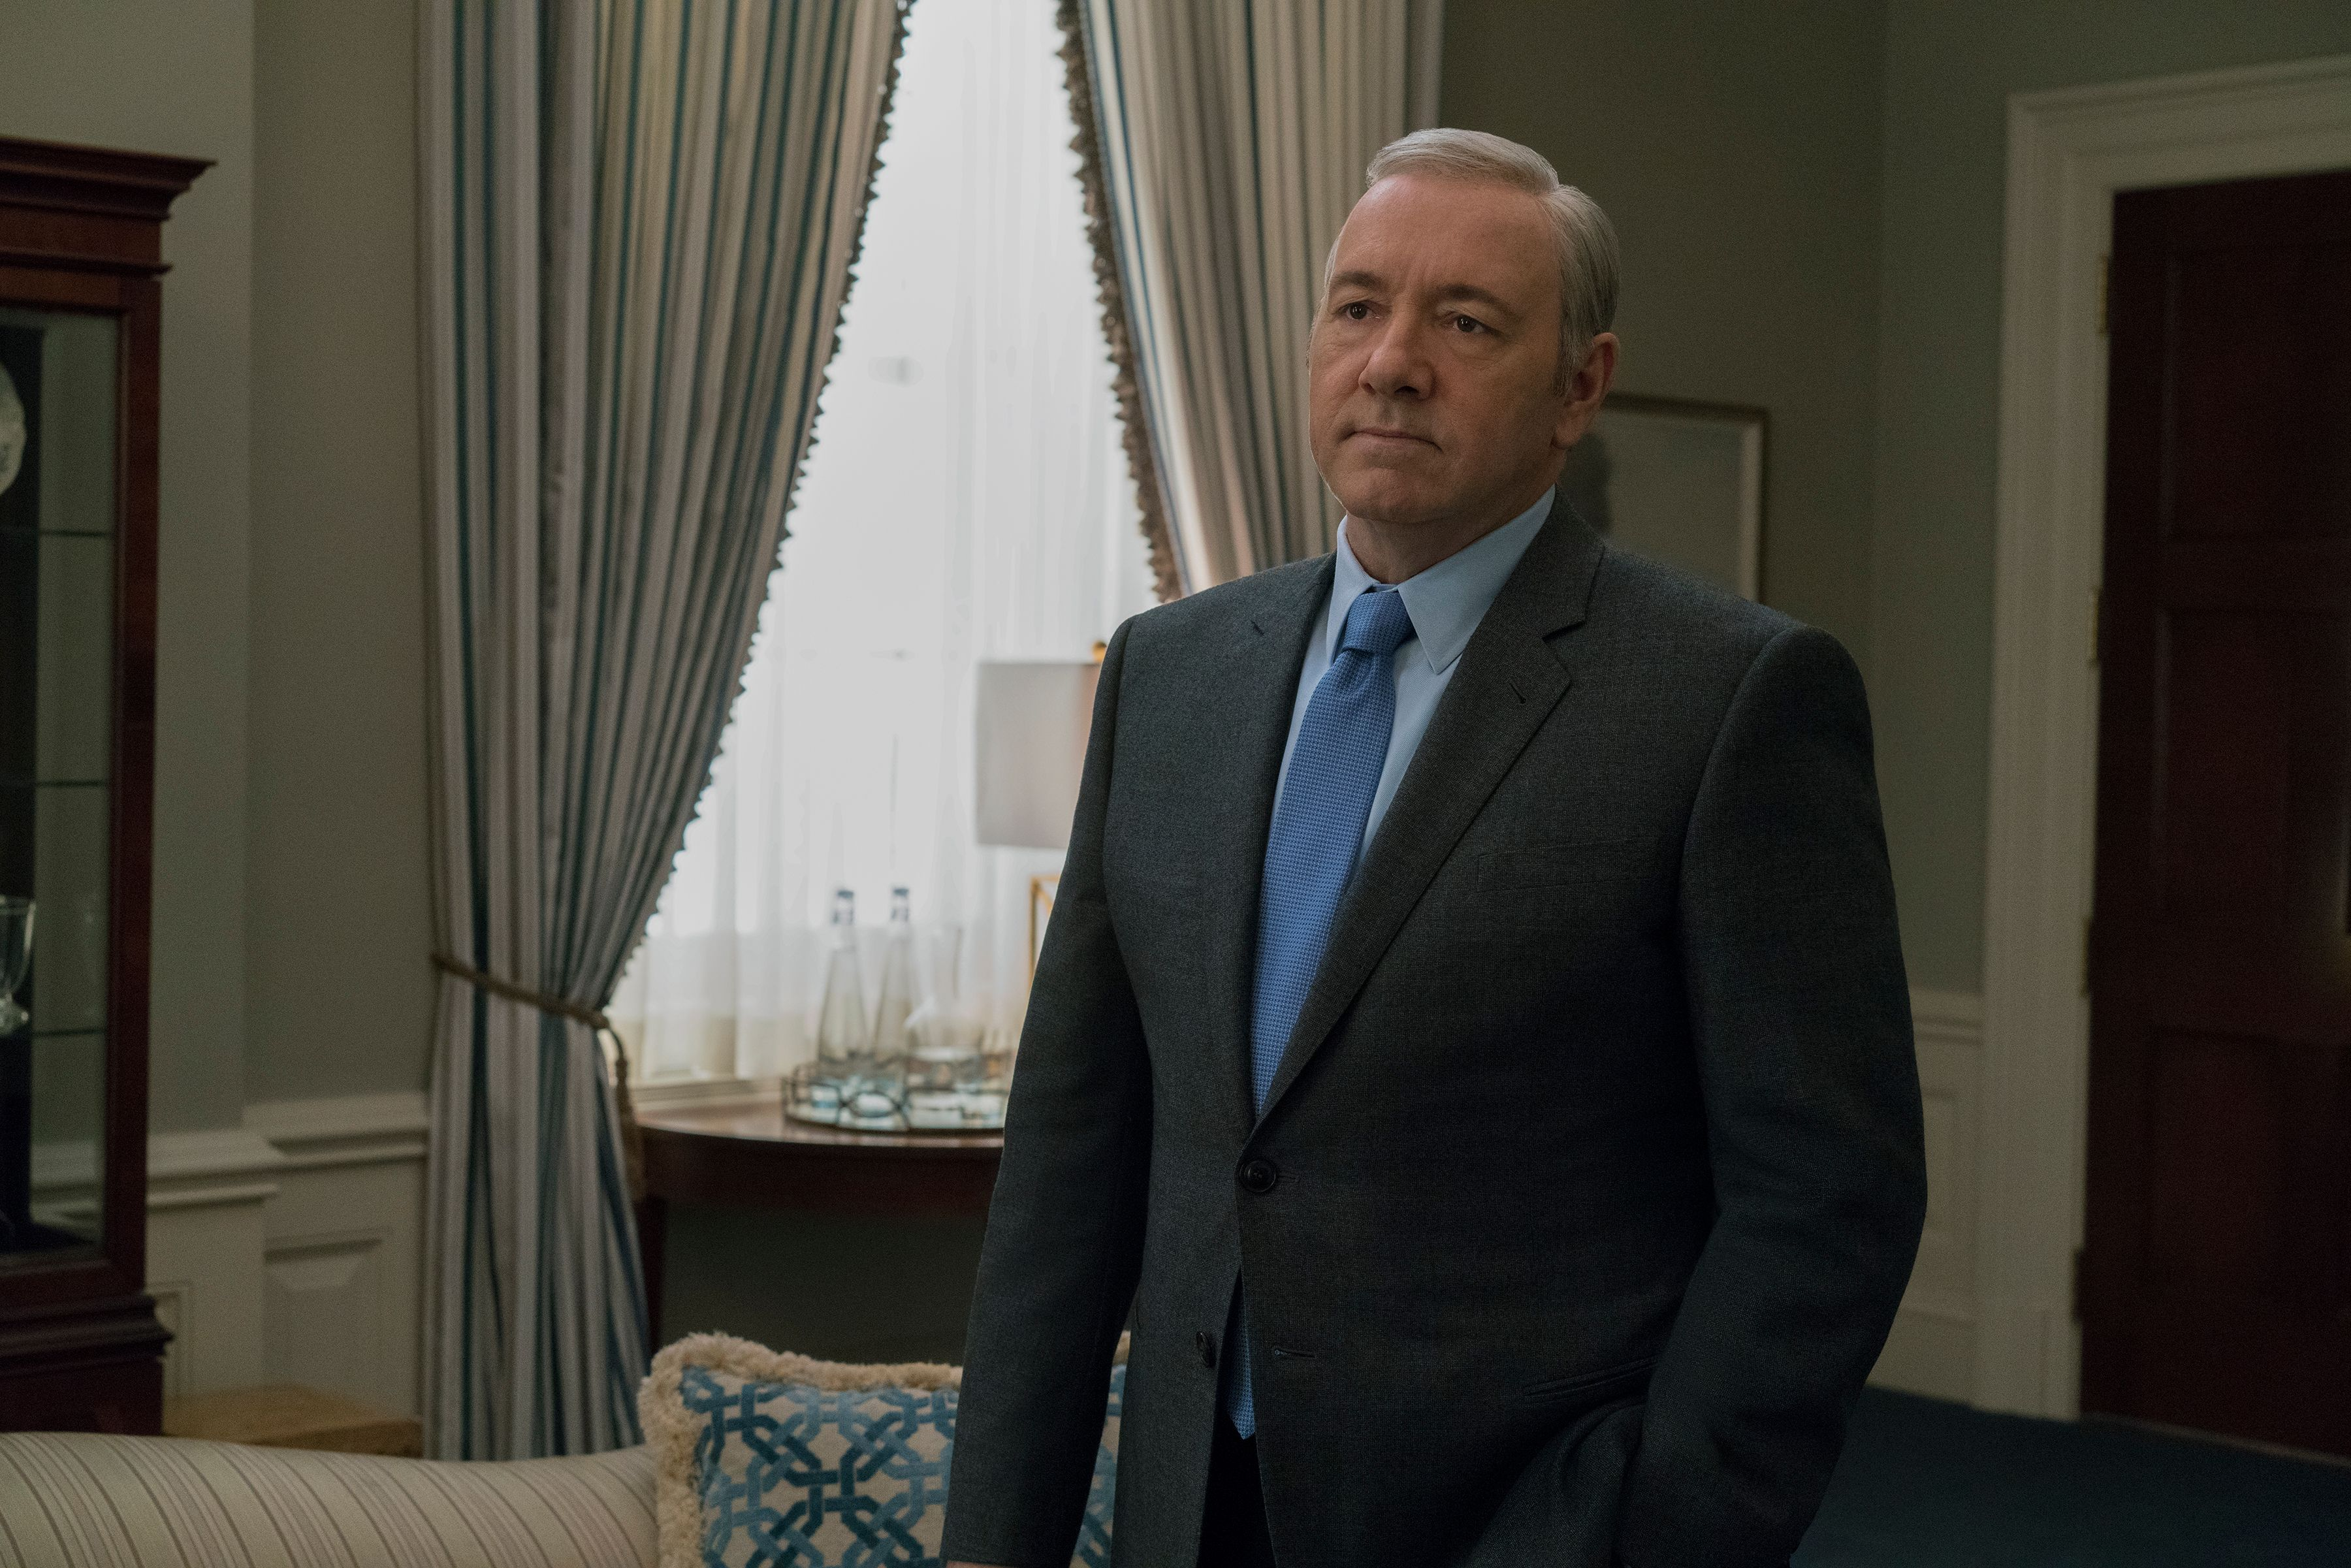 Kevin Spacey scandal: 'This Is Us' cuts Spacey reference, 'House of Cards' suspends production